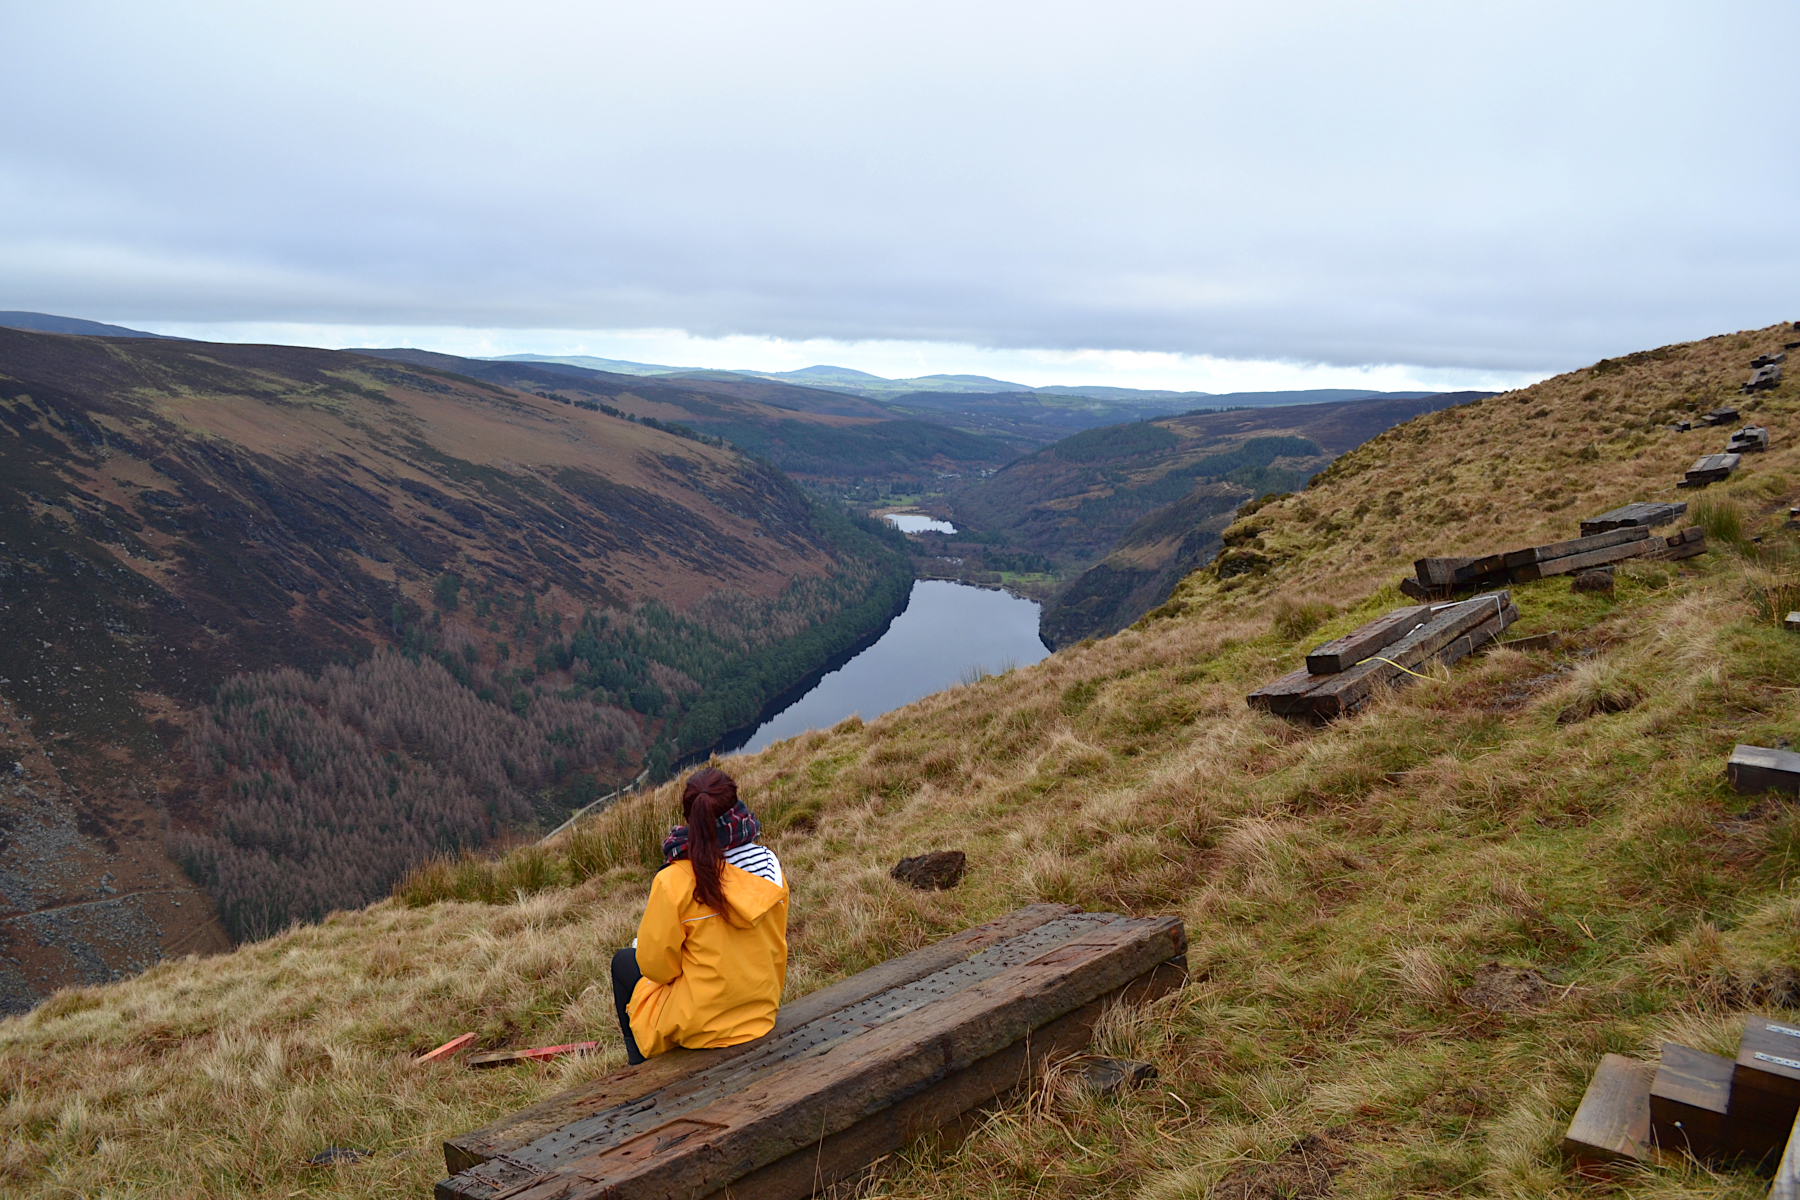 Vue sur l'upperlake et lowerlake glendalough, wicklow montains national parc, irlande